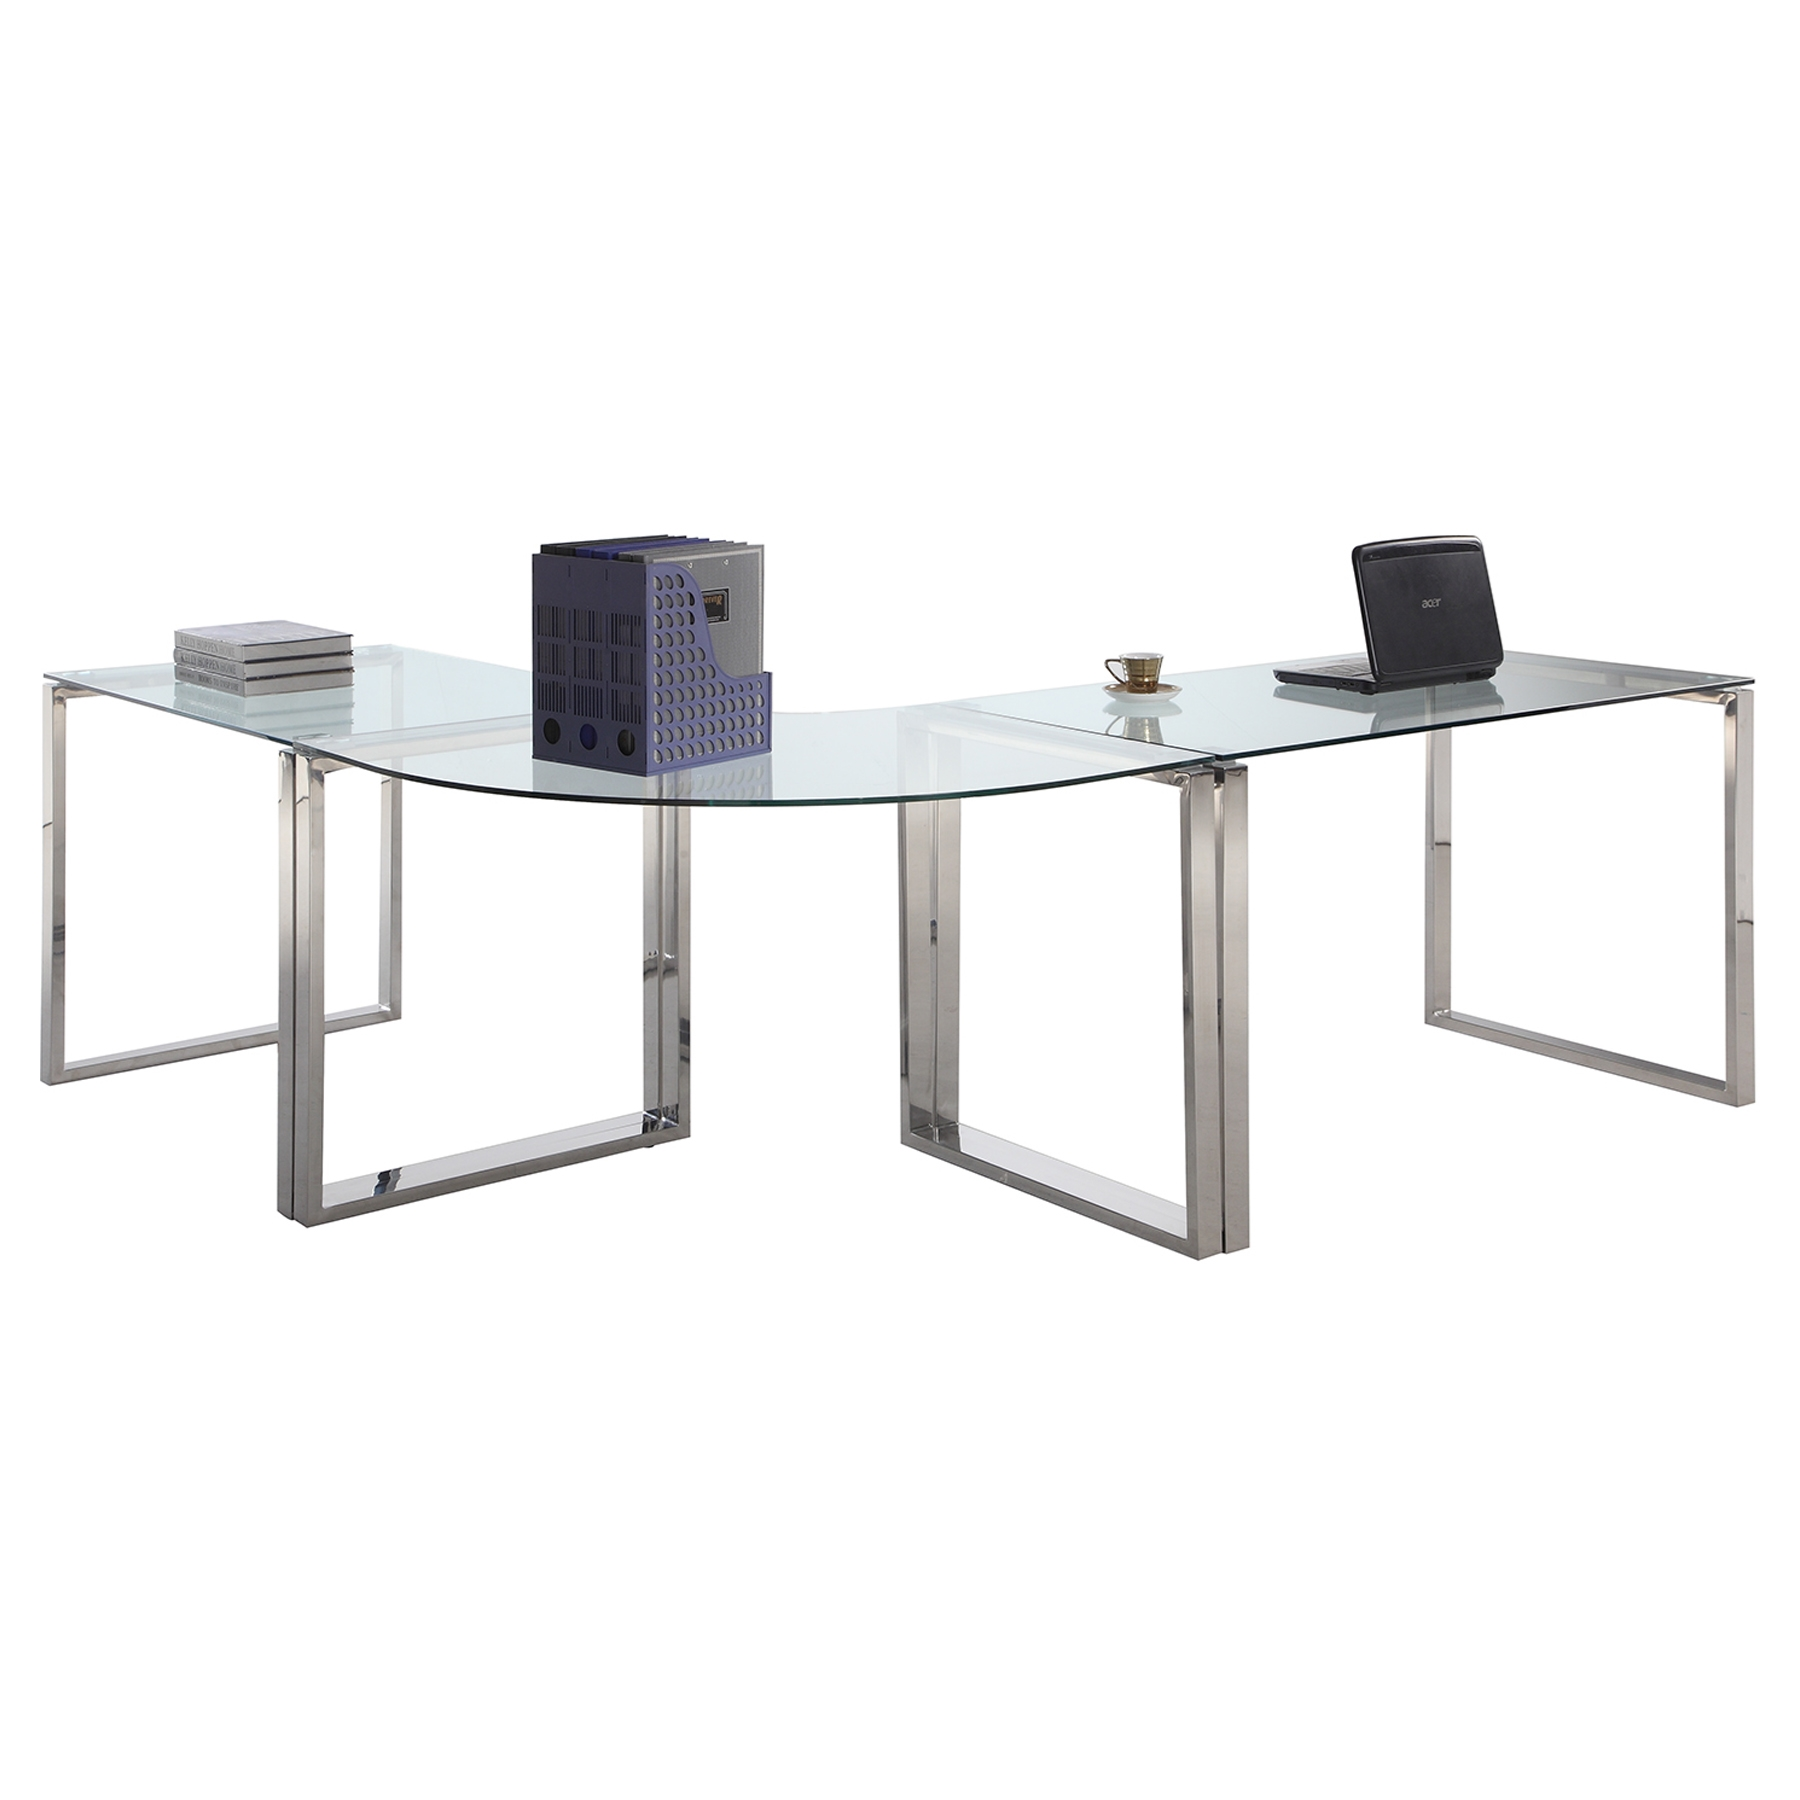 - 3 Pieces Computer Desk - Glass Top, Stainless Steel Base DCG Stores